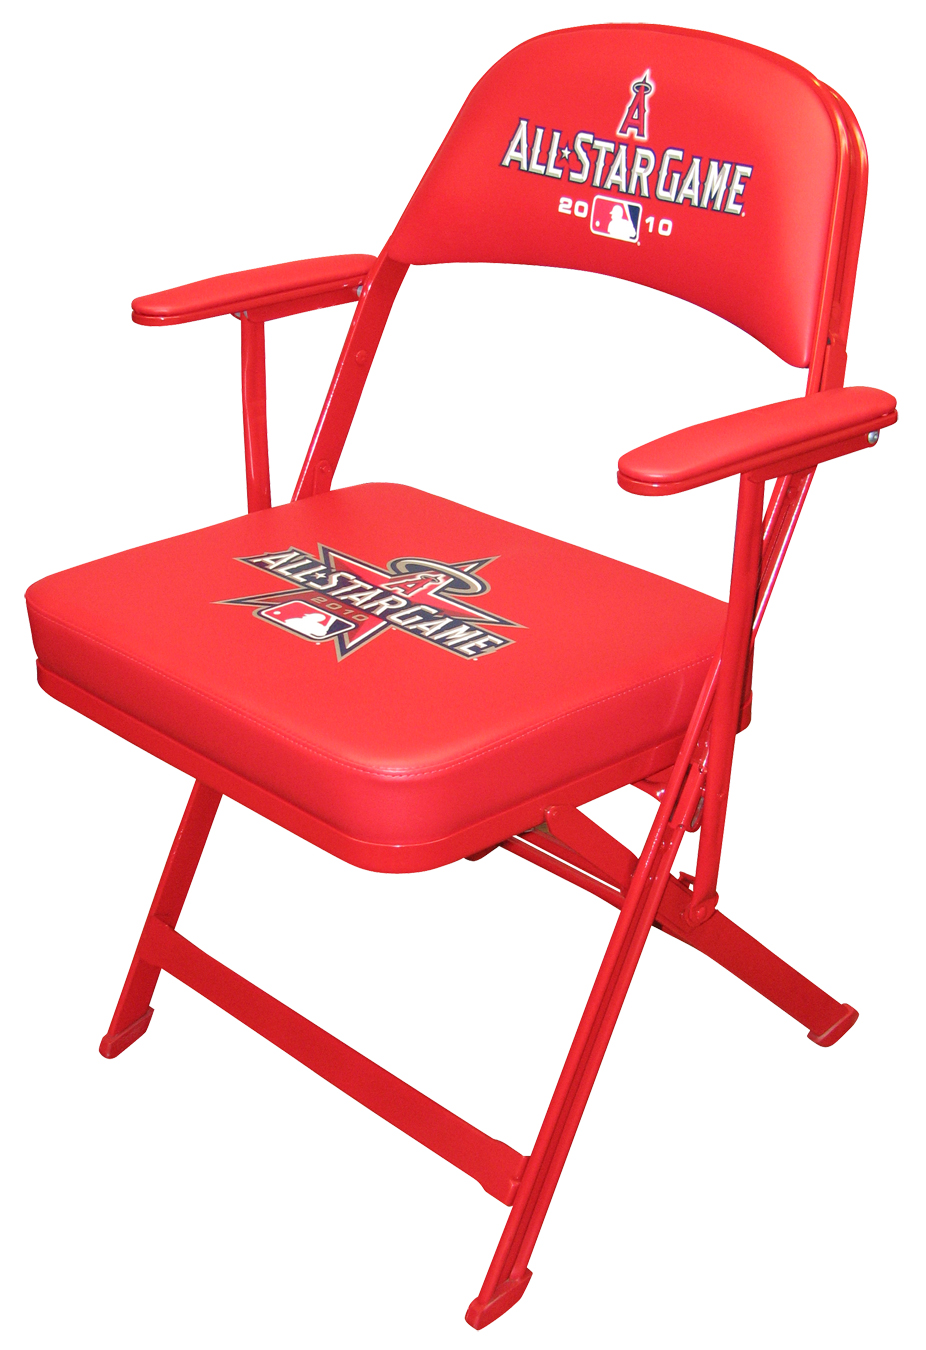 Screen Printed Chairs